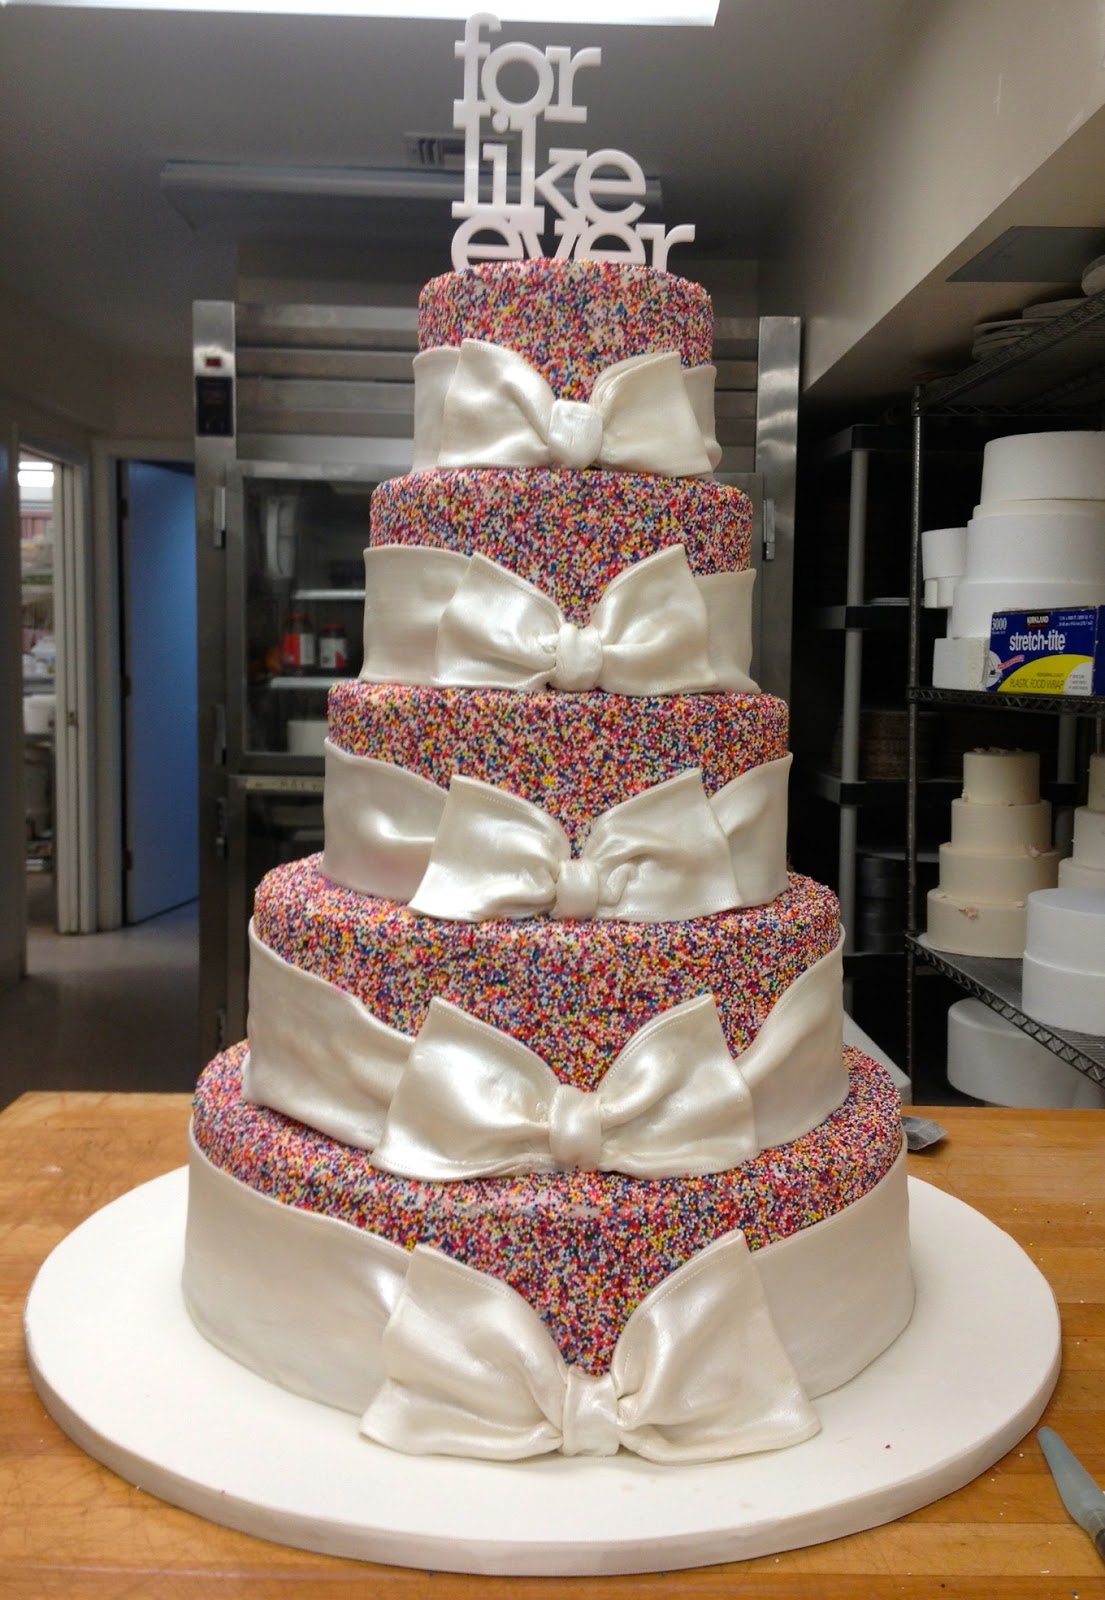 For the Love of Cake by Garry  Ana Parzych Making of a Playful Custom Wedding Cake CT